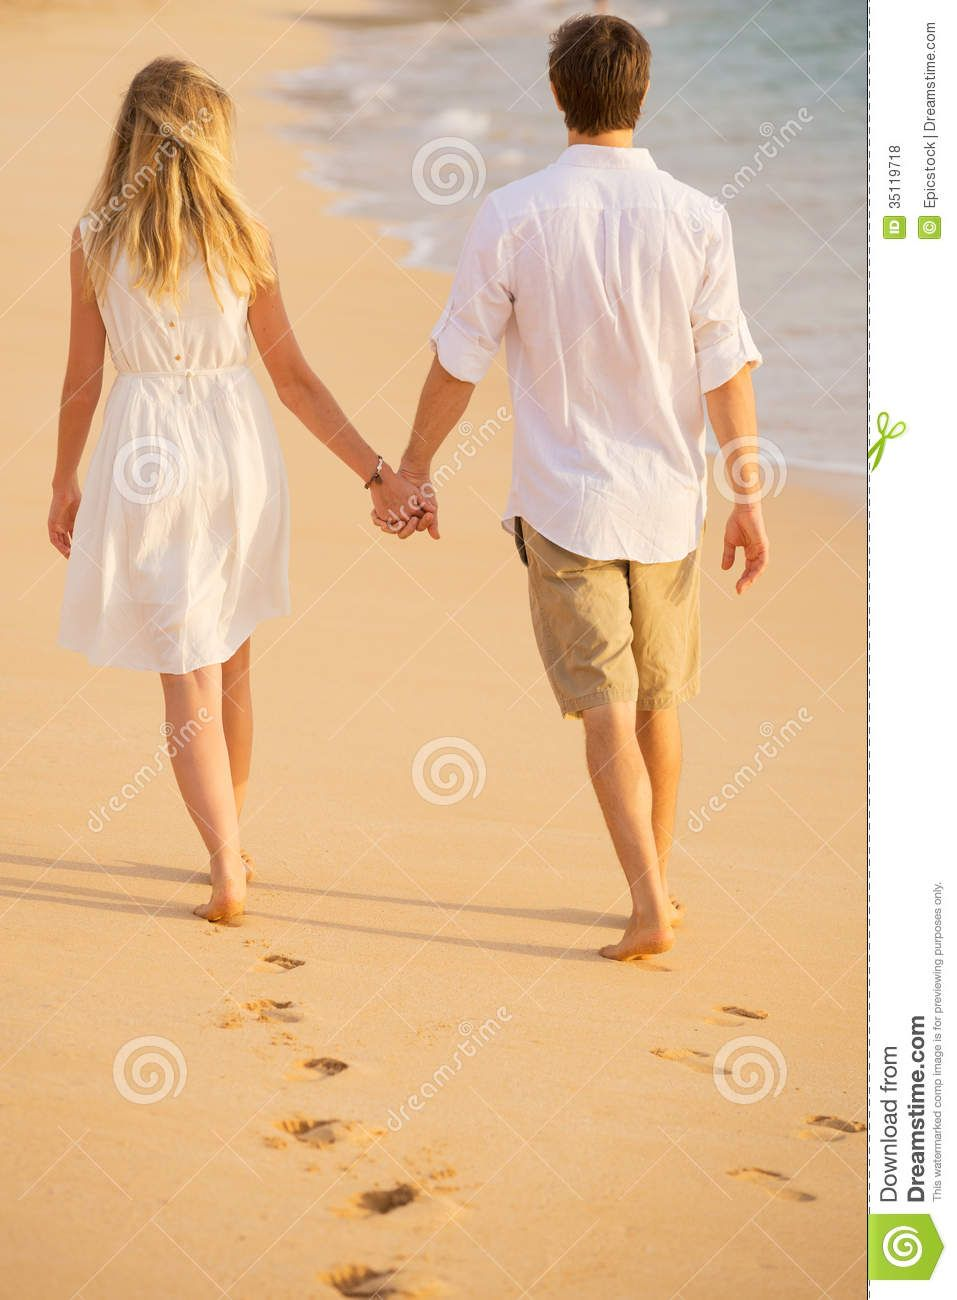 Romantic Couple Holding Hands Walking On Beach At Sunset ...